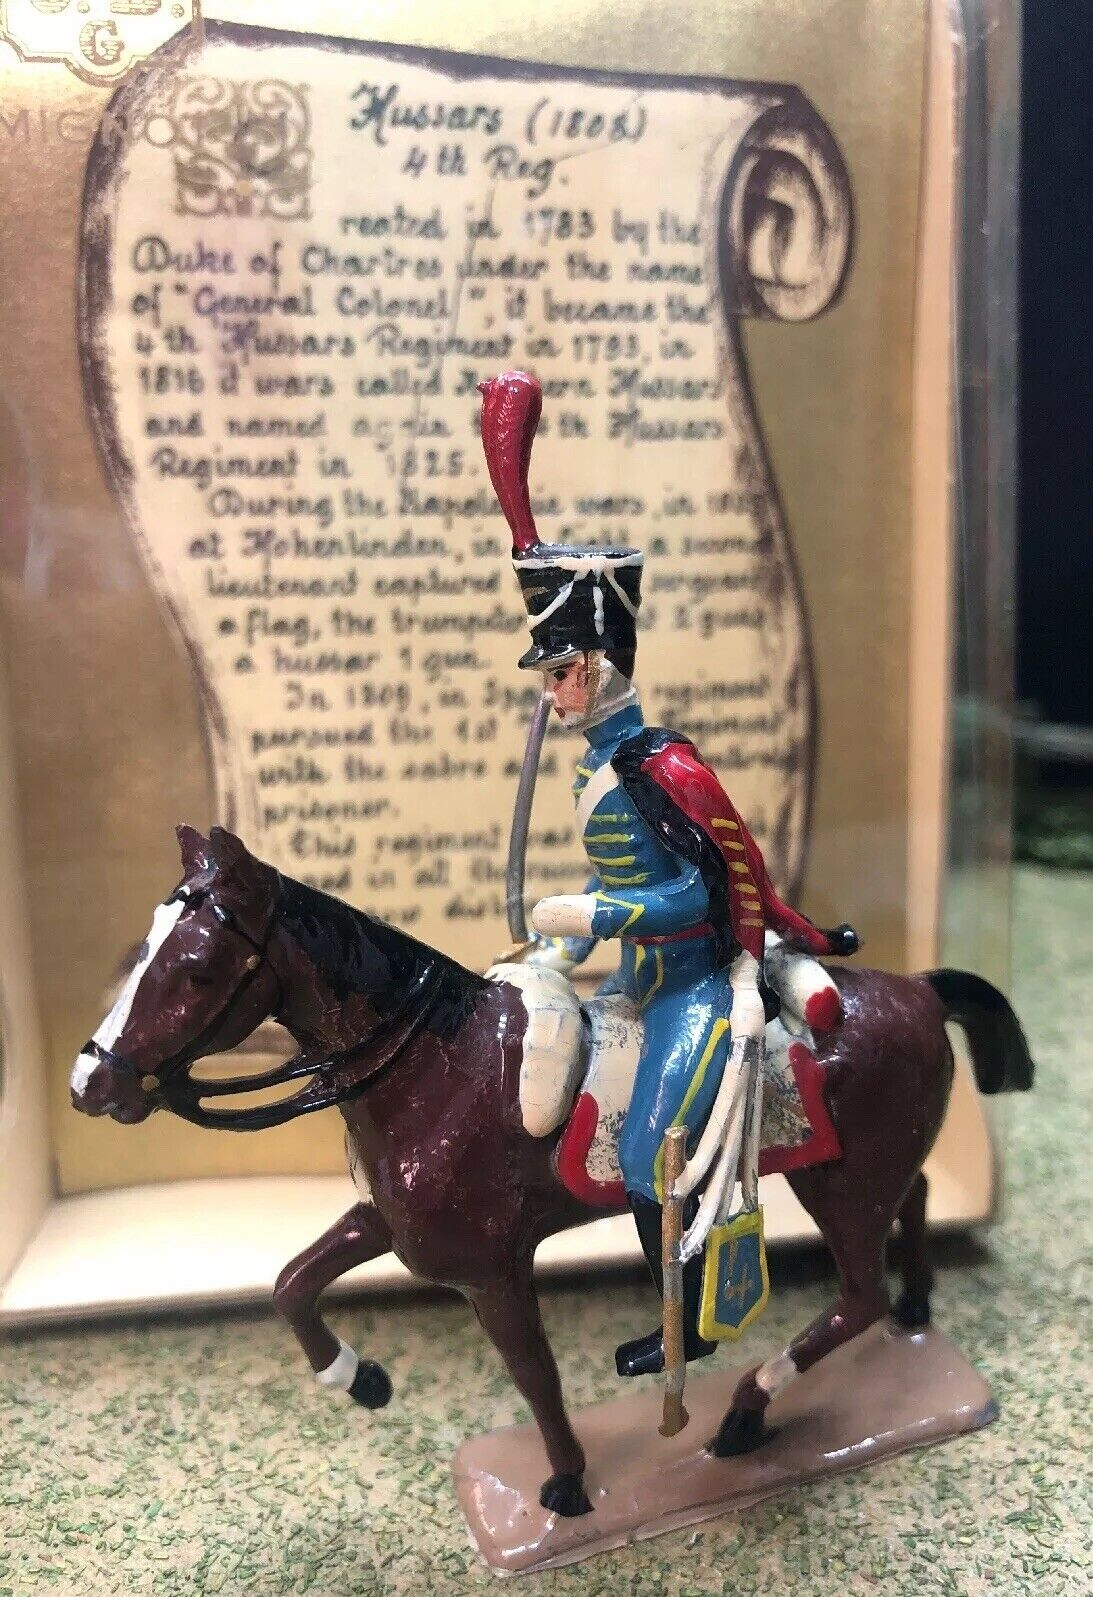 CBG Mignot SetSingle Hussars Cavalry 1st Empire (1808) 4th Reg. 54mm scale